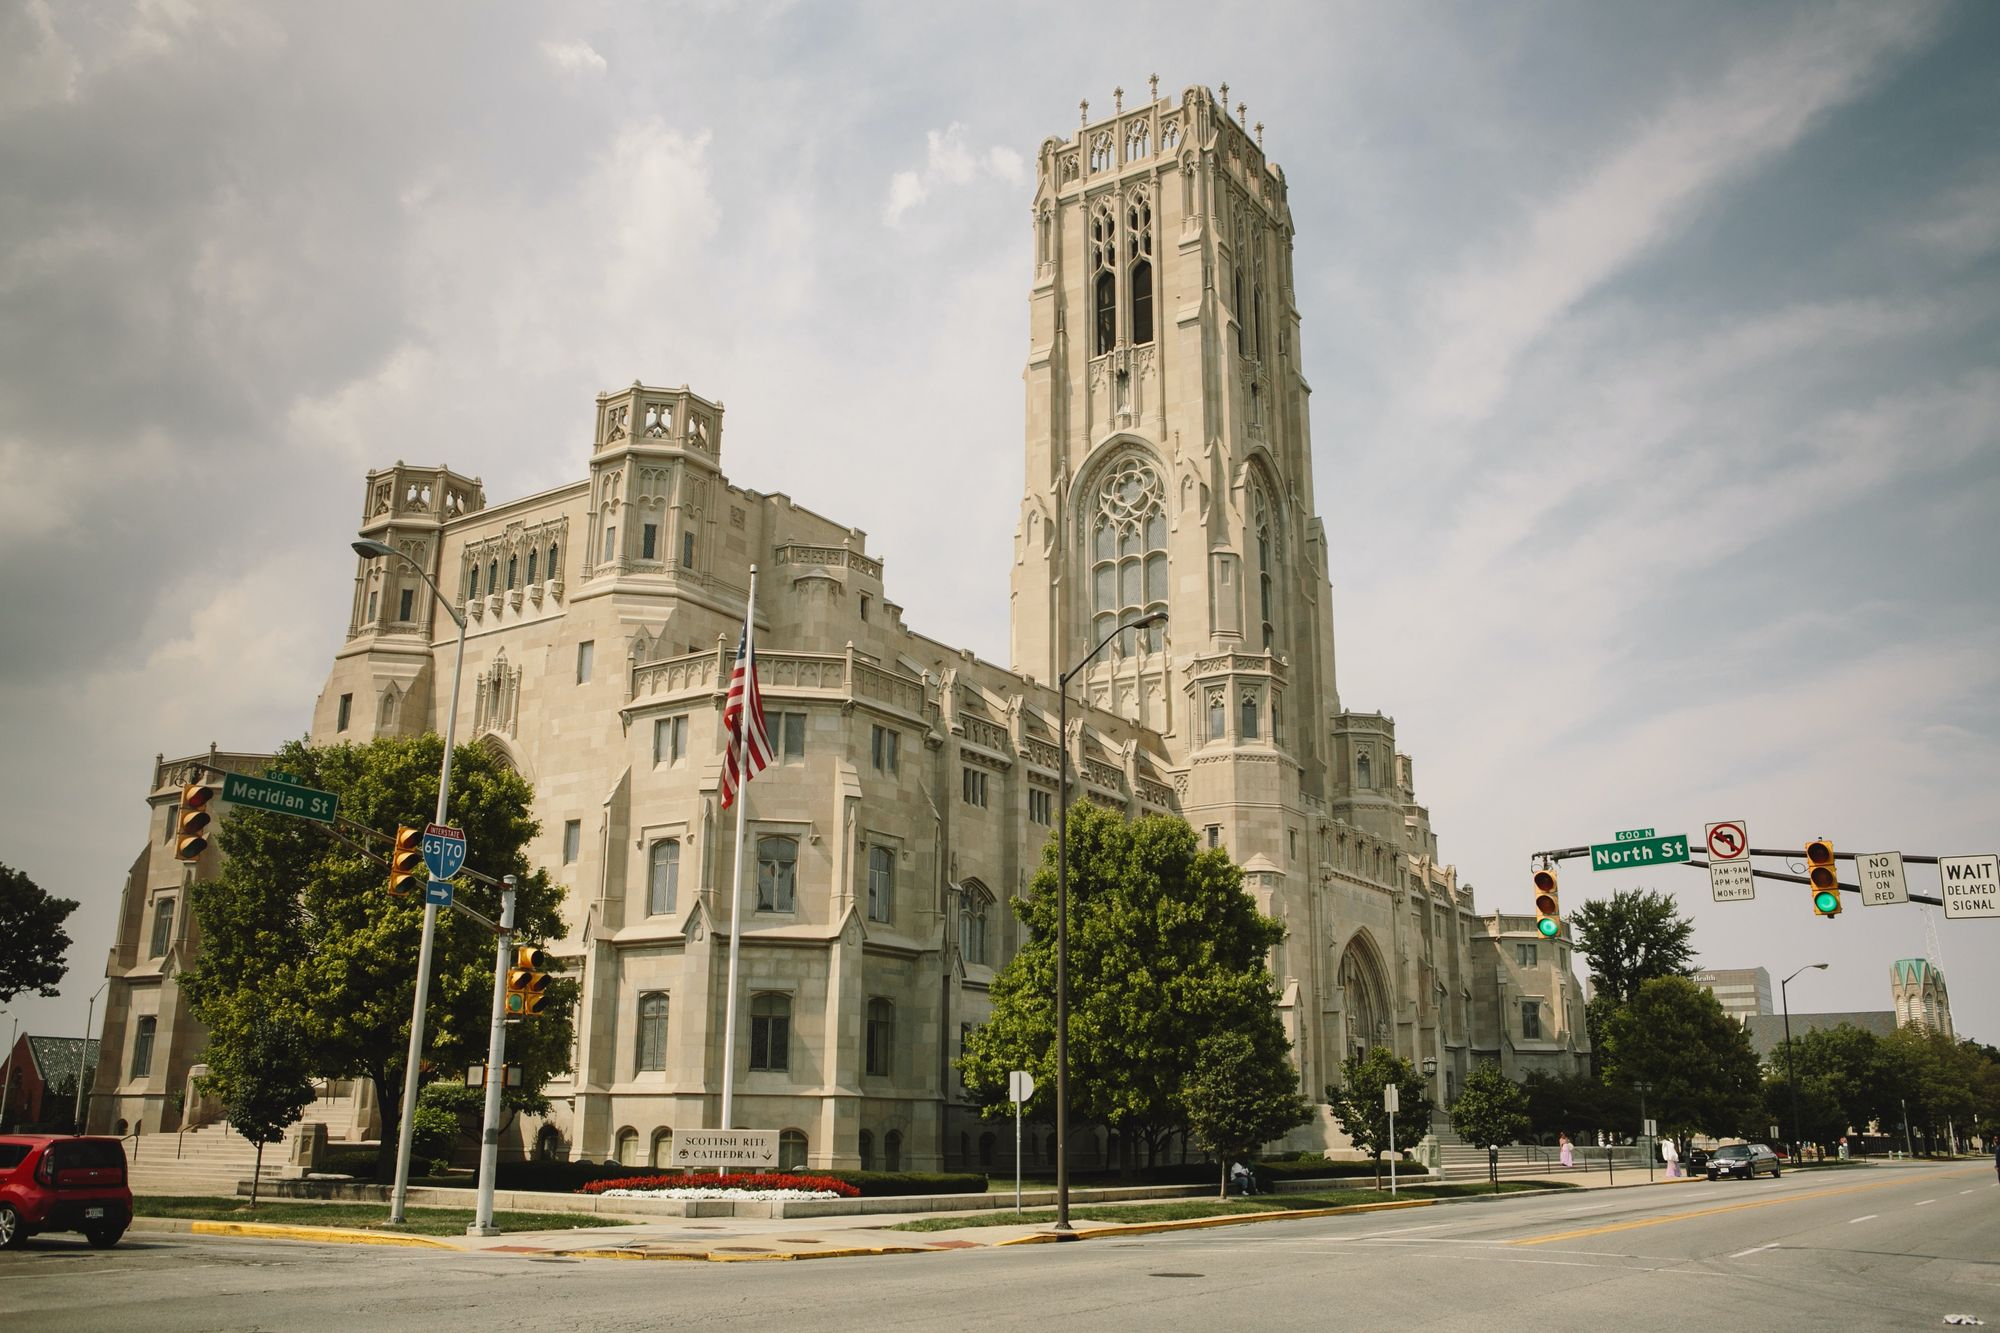 Scottish Rite Cathedral in Indianapolis